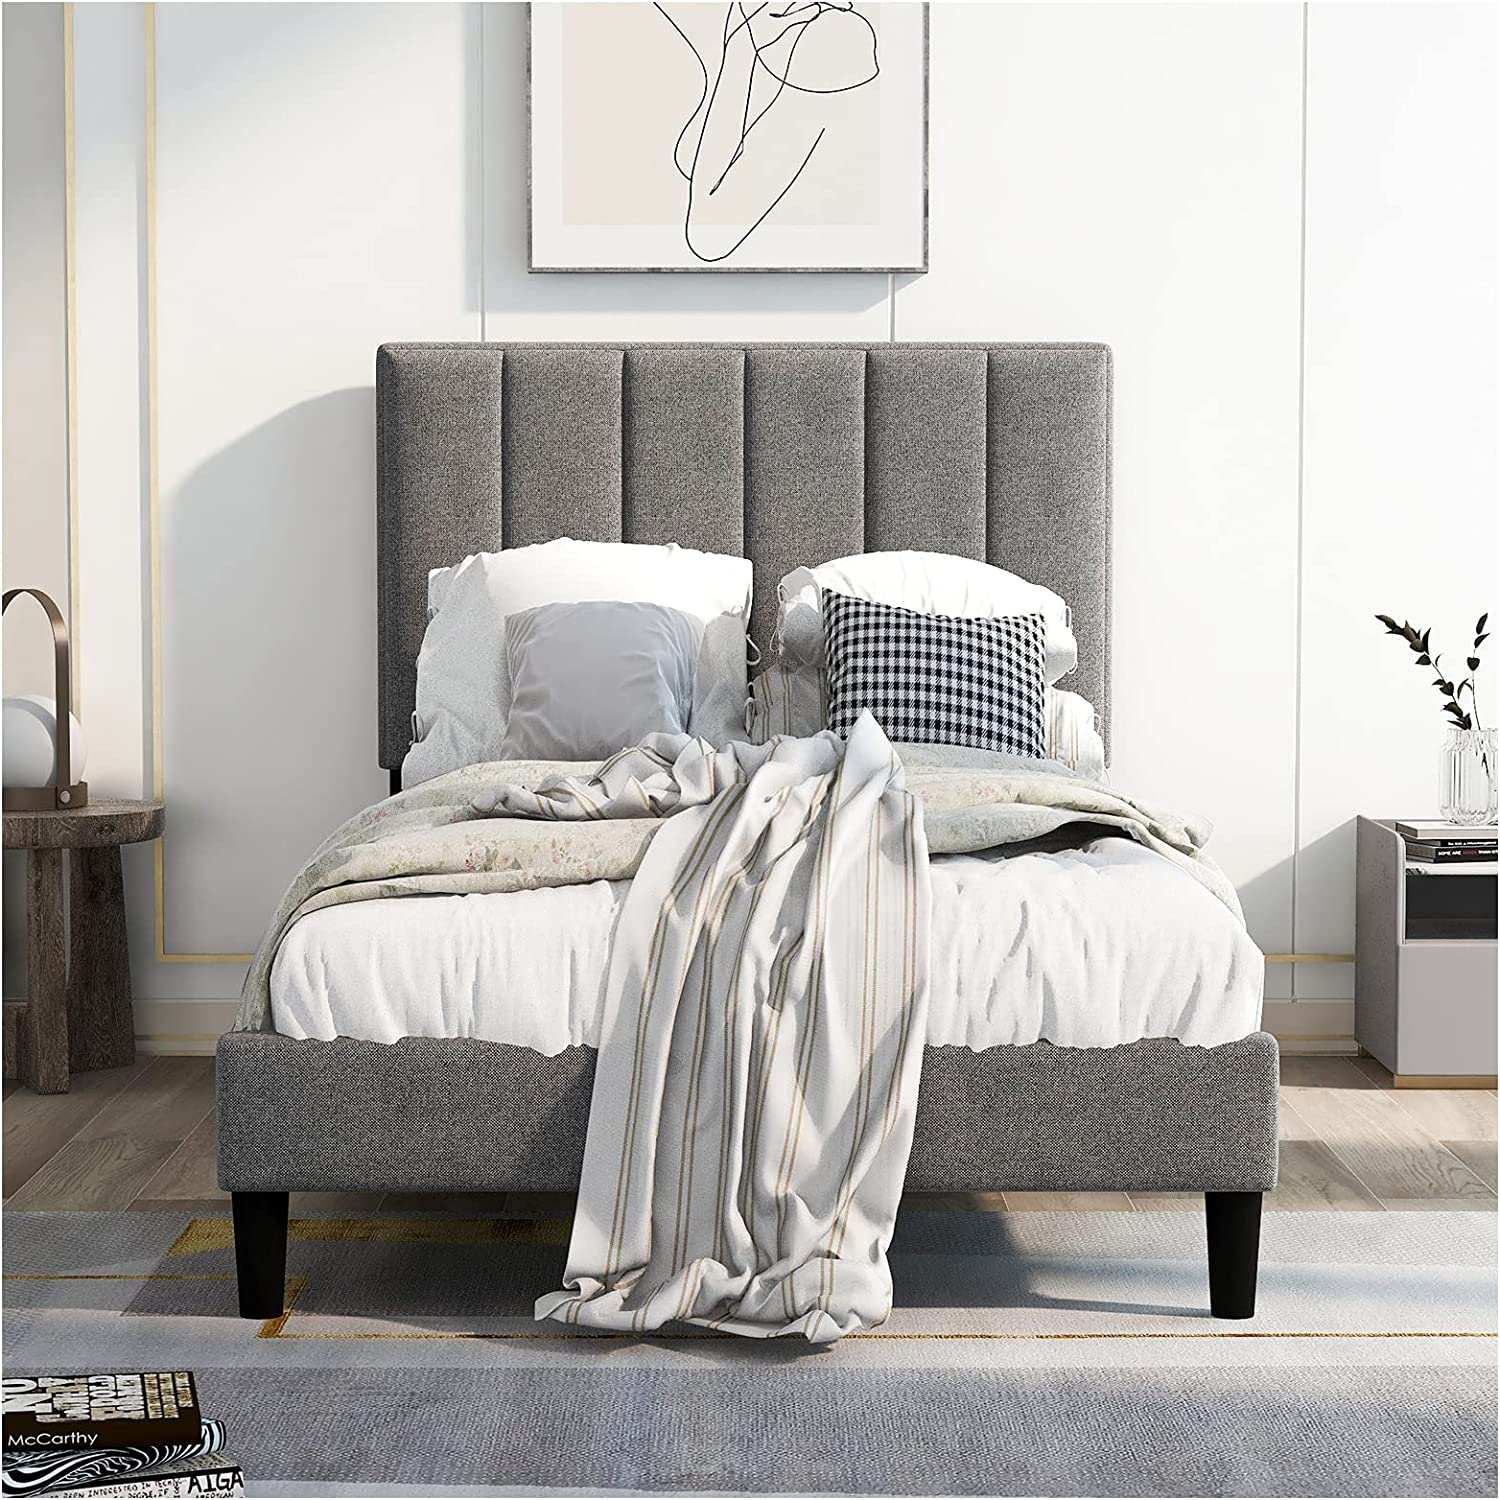 Twin Size Upholstered New sales Platform Bed with Sl Wood Popular overseas Frame Headboard